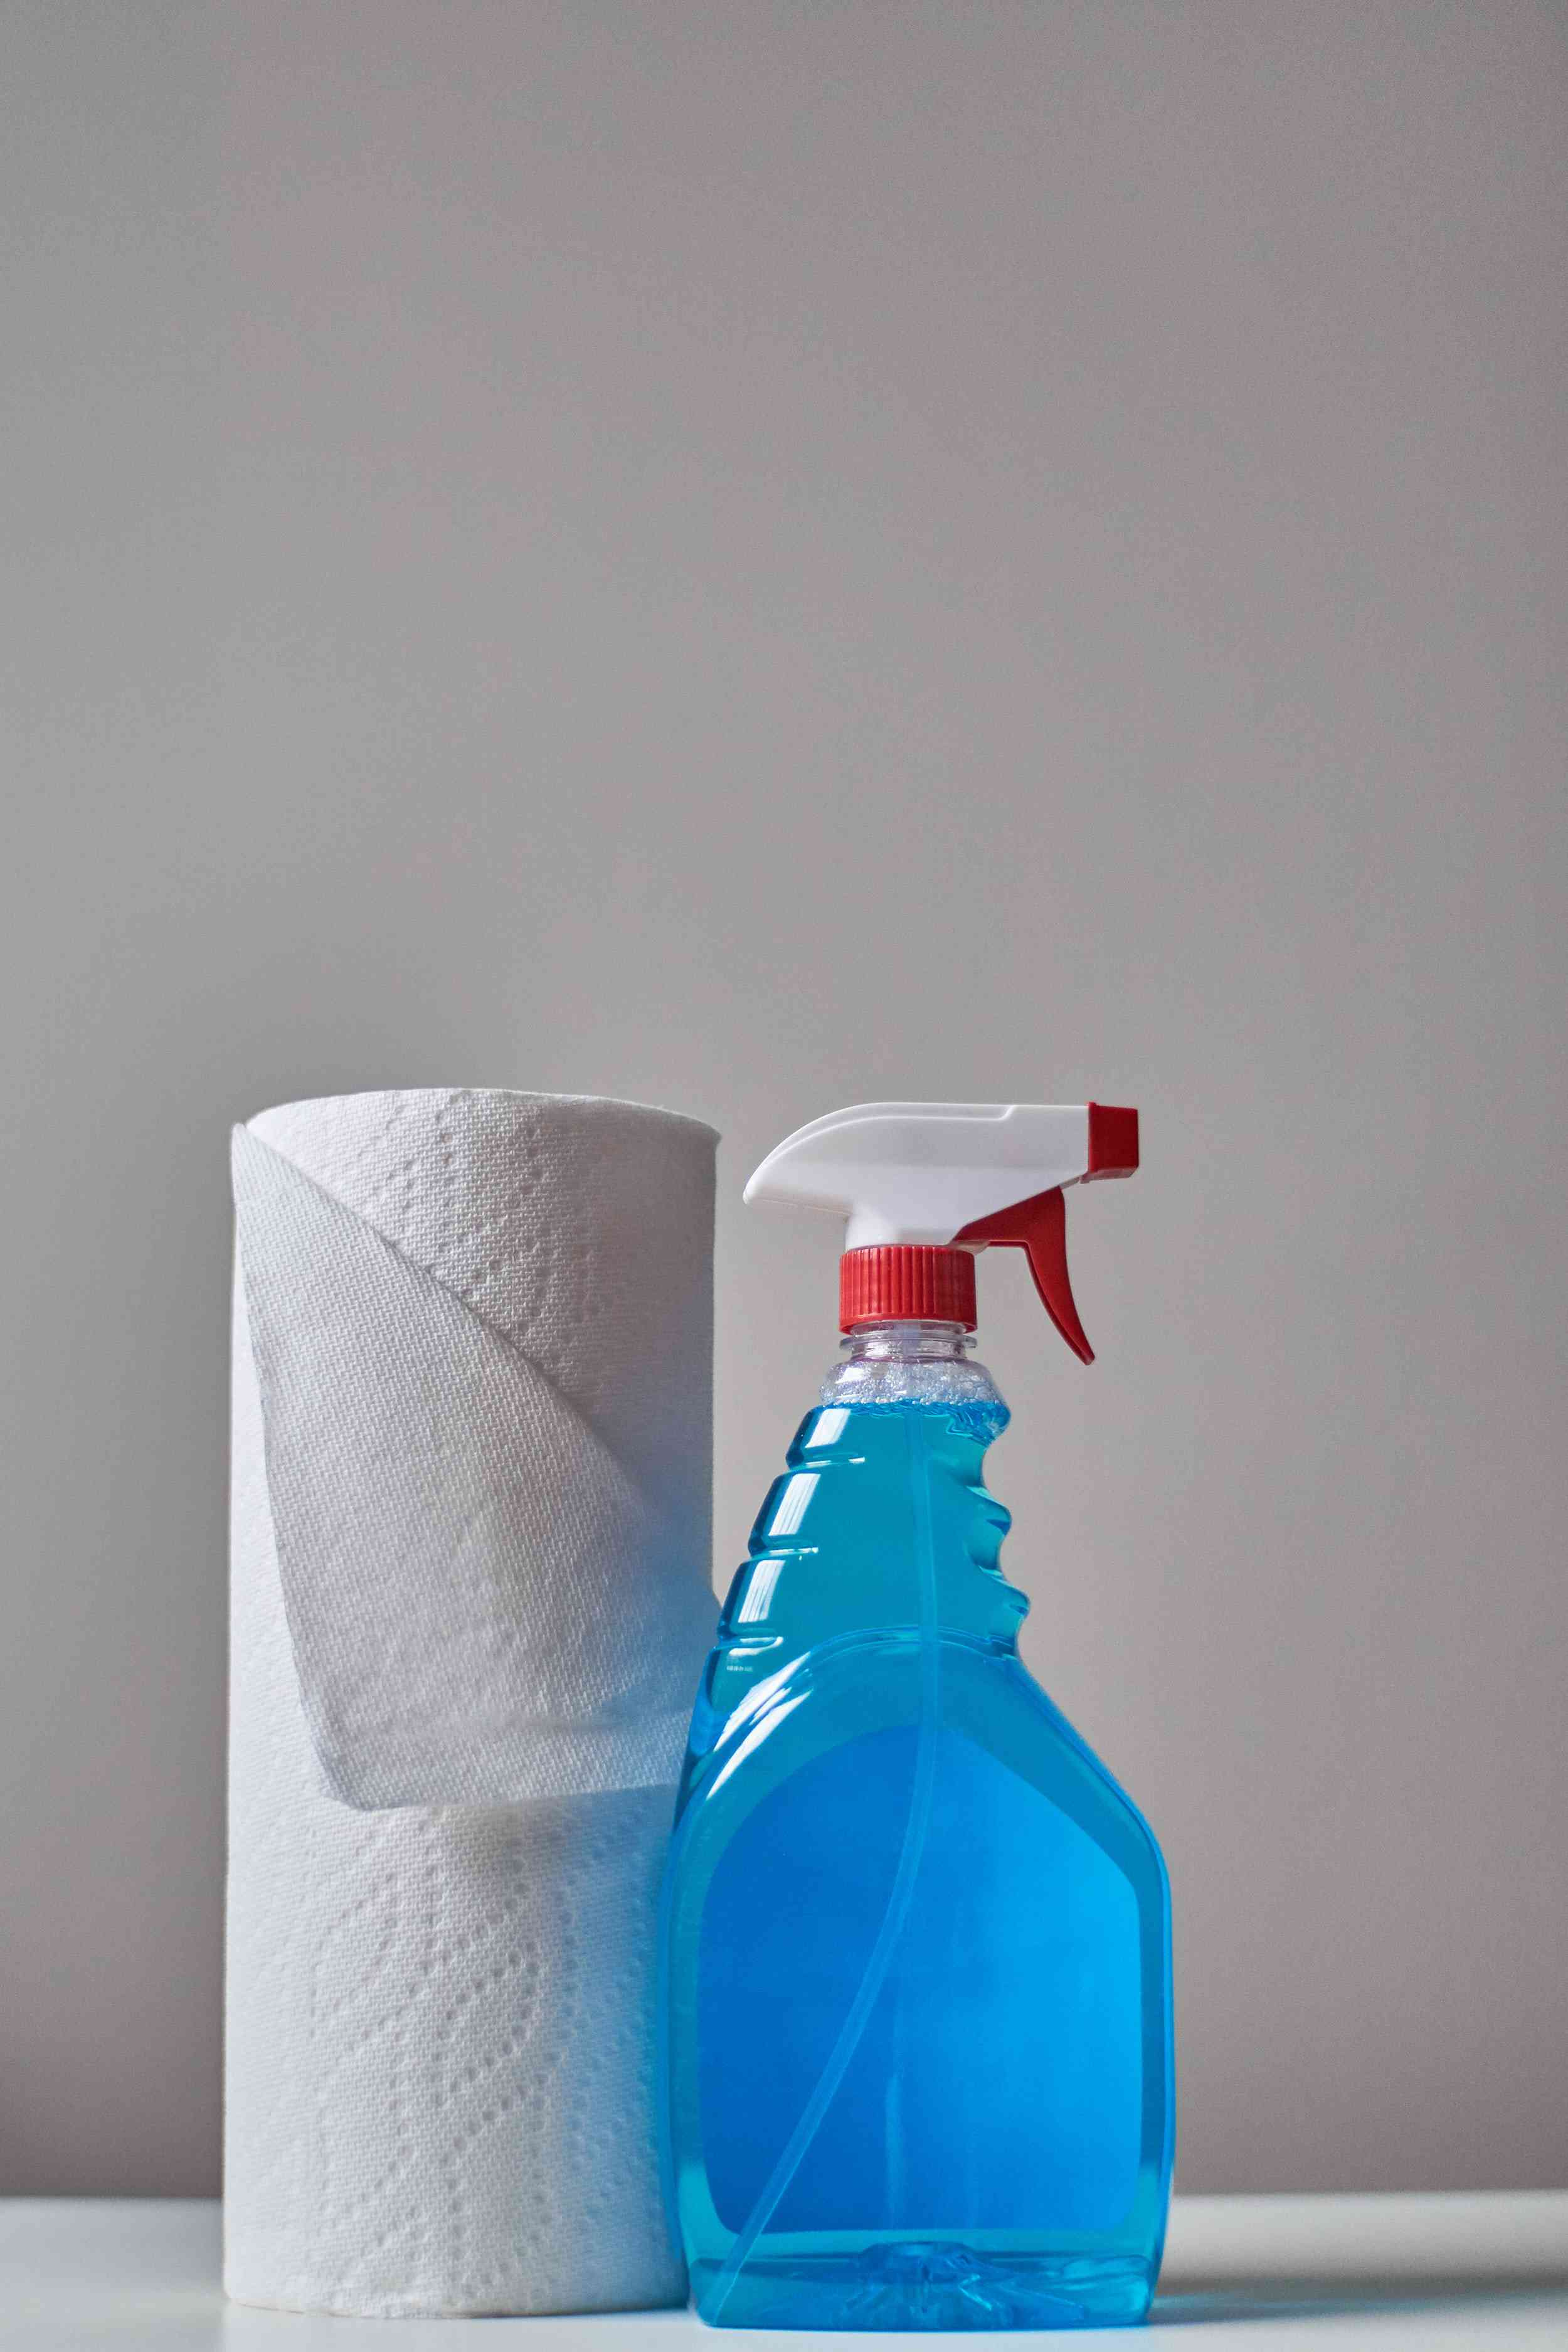 Cleaner and paper towels